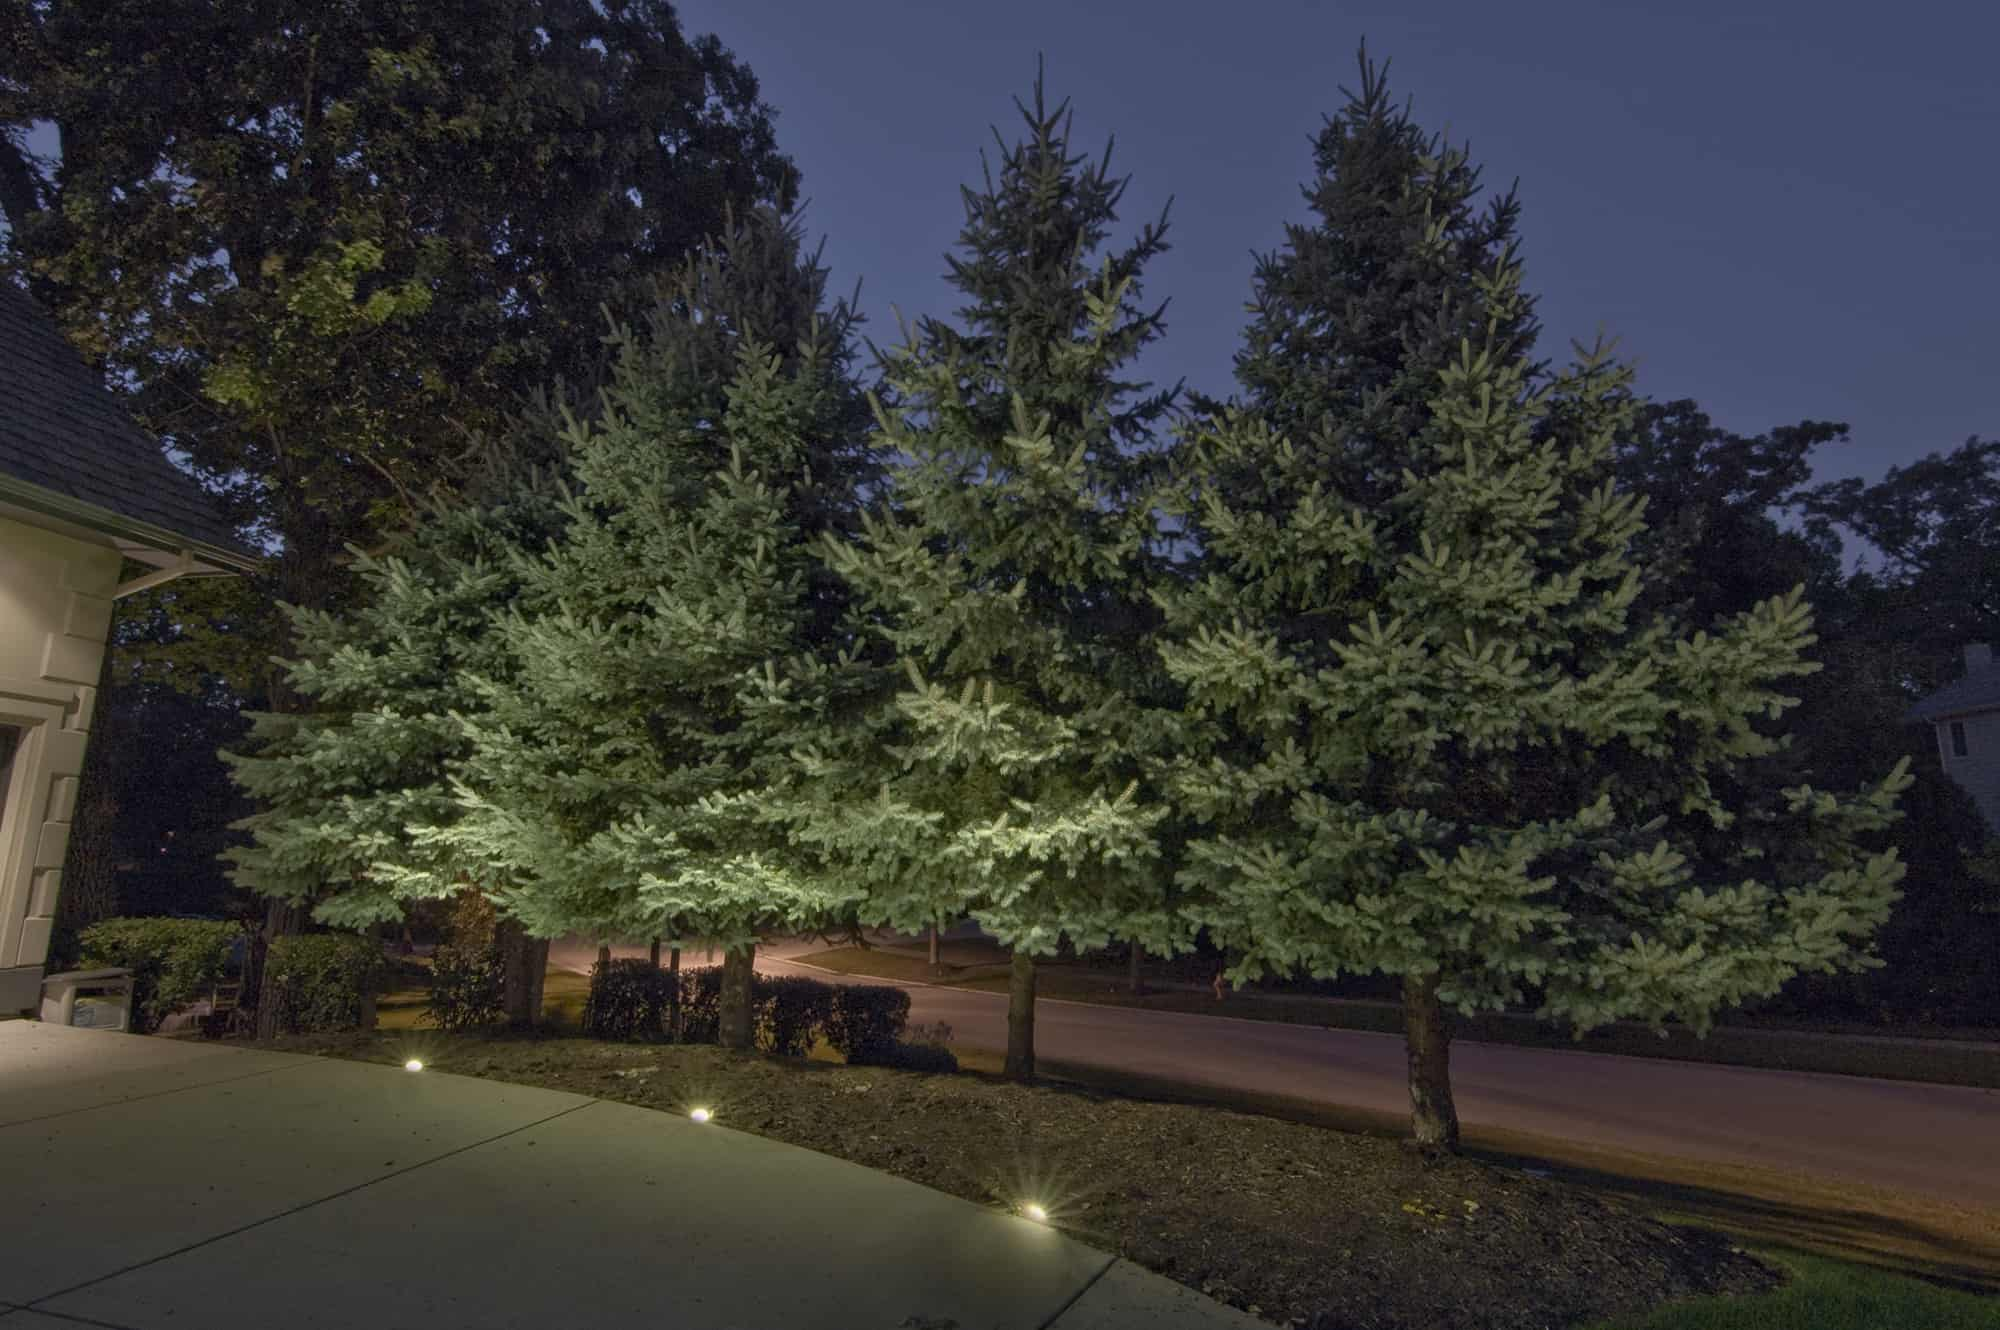 Naperville Tree Lighting & Tree Lighting - Outdoor Lighting in Chicago IL | Outdoor Accents azcodes.com